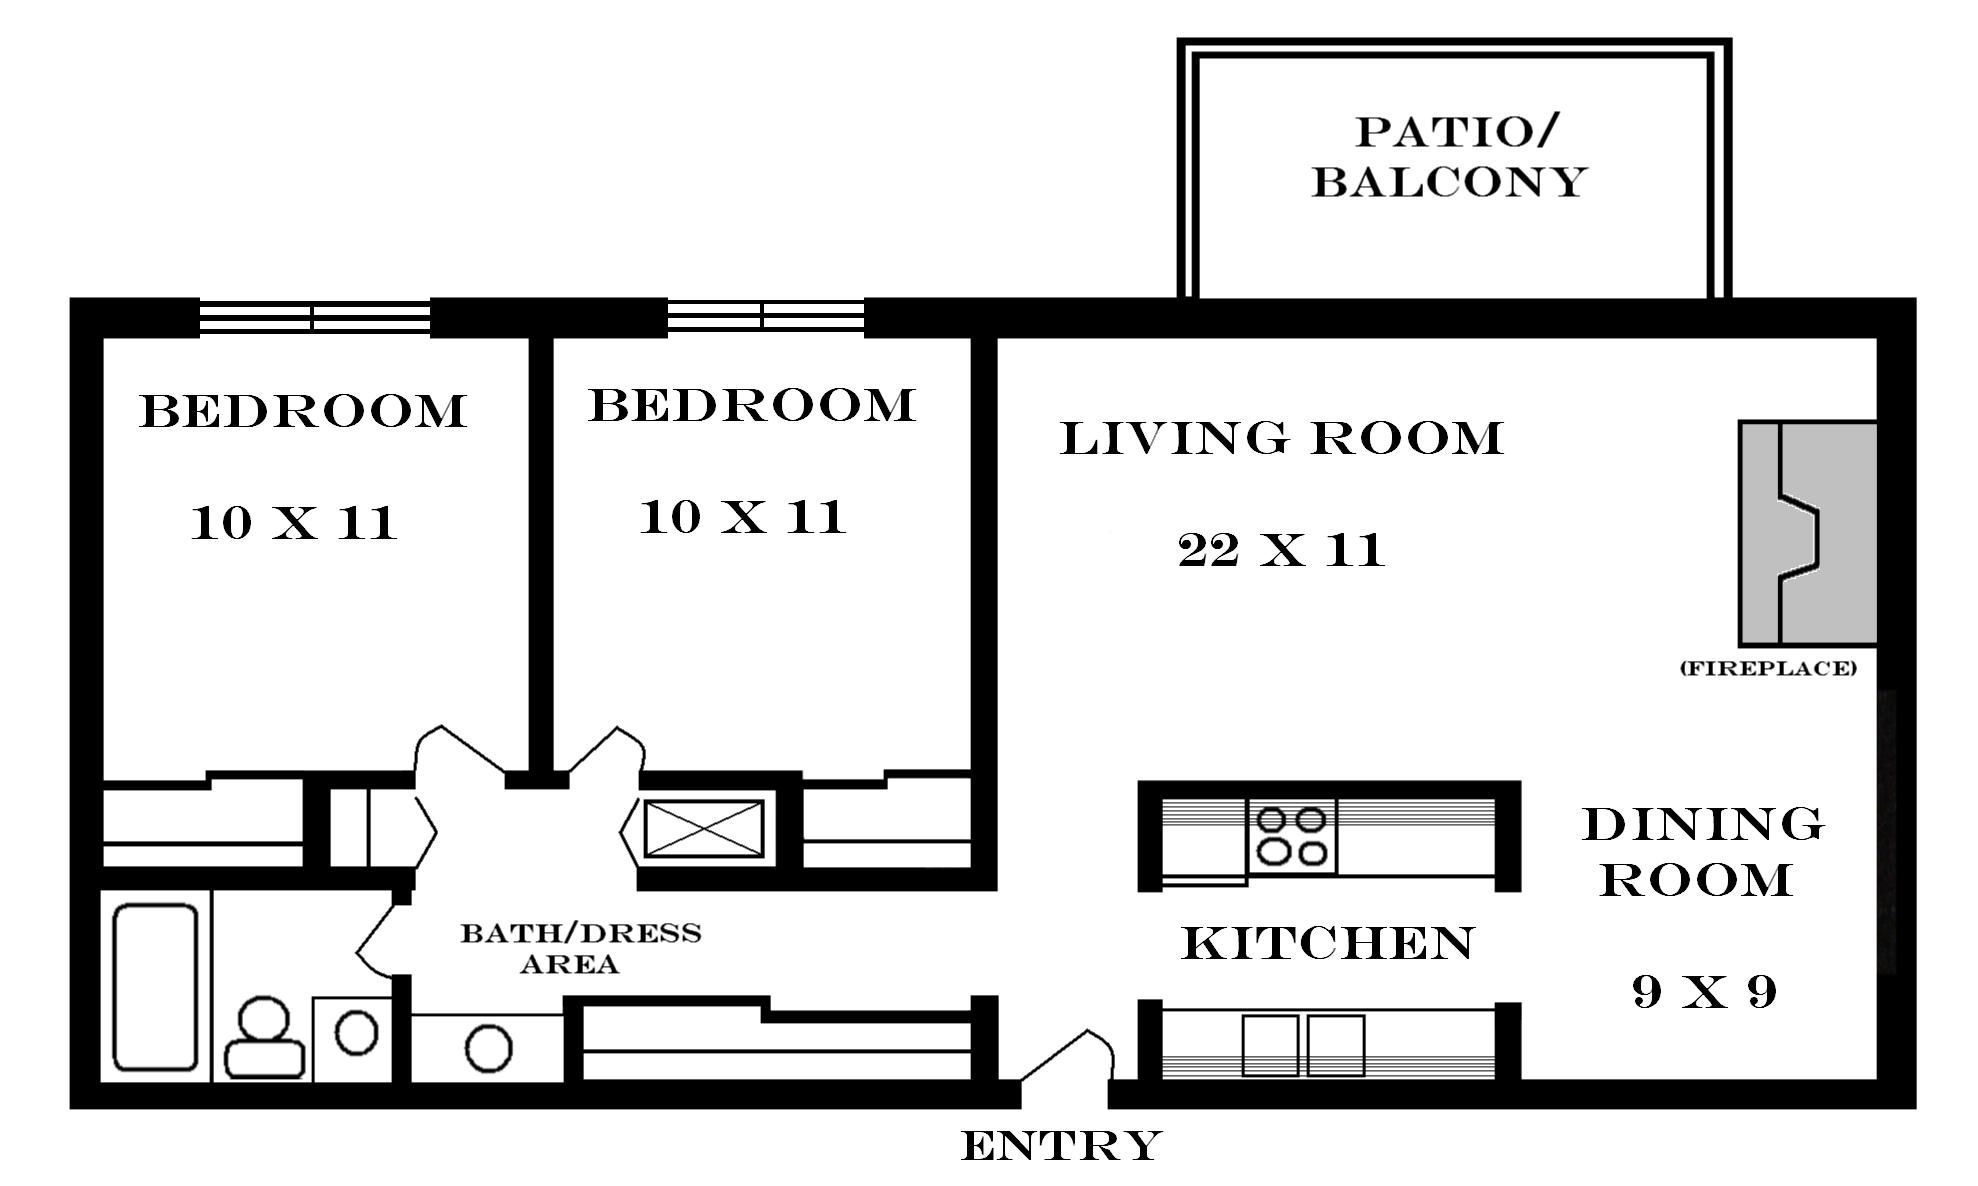 2 Bedroom Apartment Blueprints Small House Floor Plans 2 Bedrooms 900 Tiny Houses